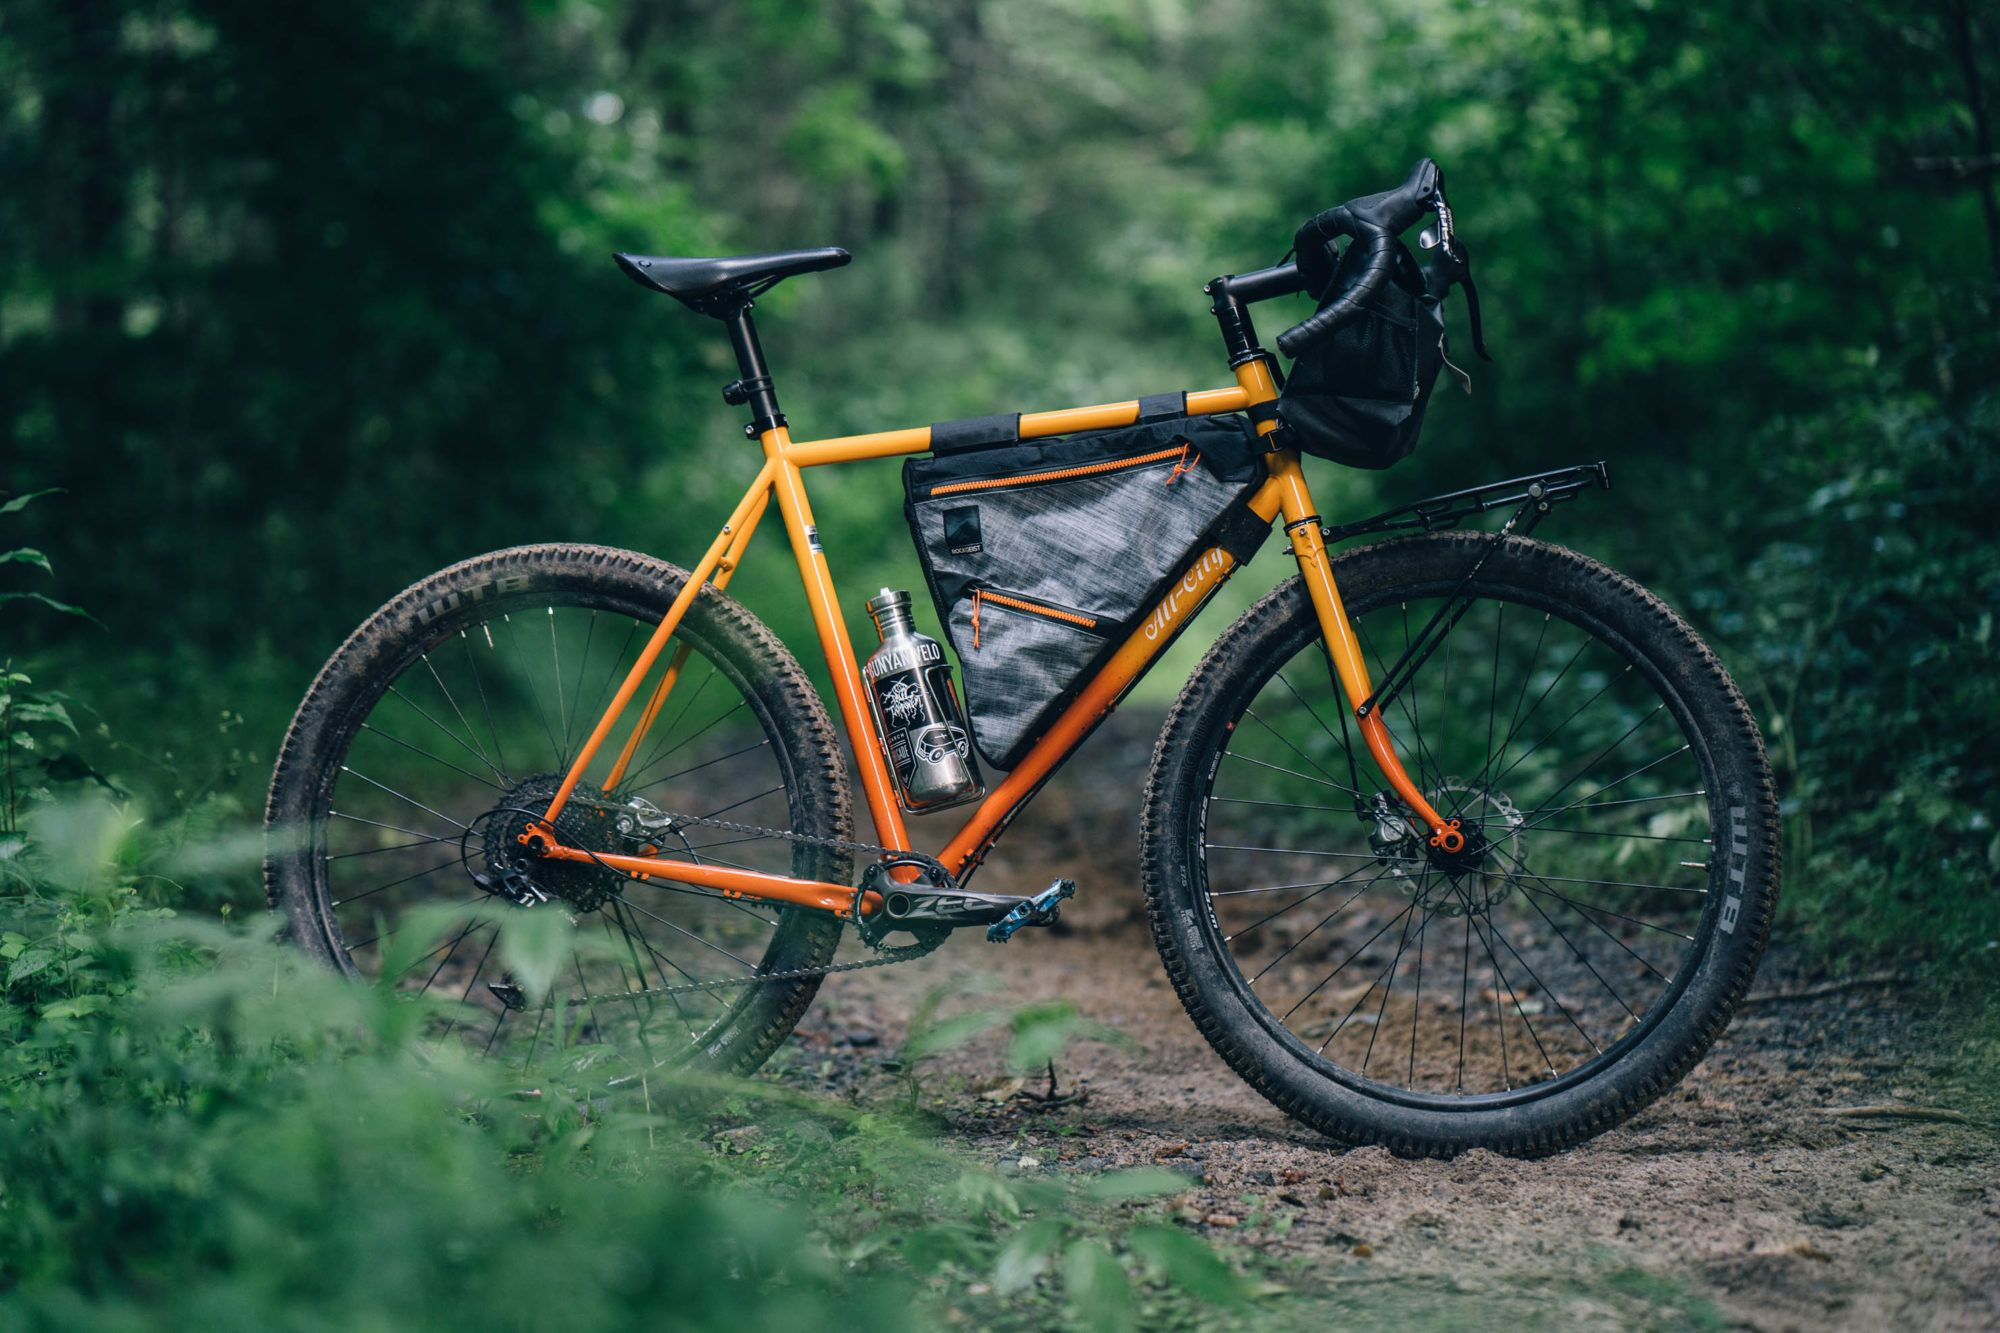 2018 Bikepacking Awards Gear Of The Year Cycling City